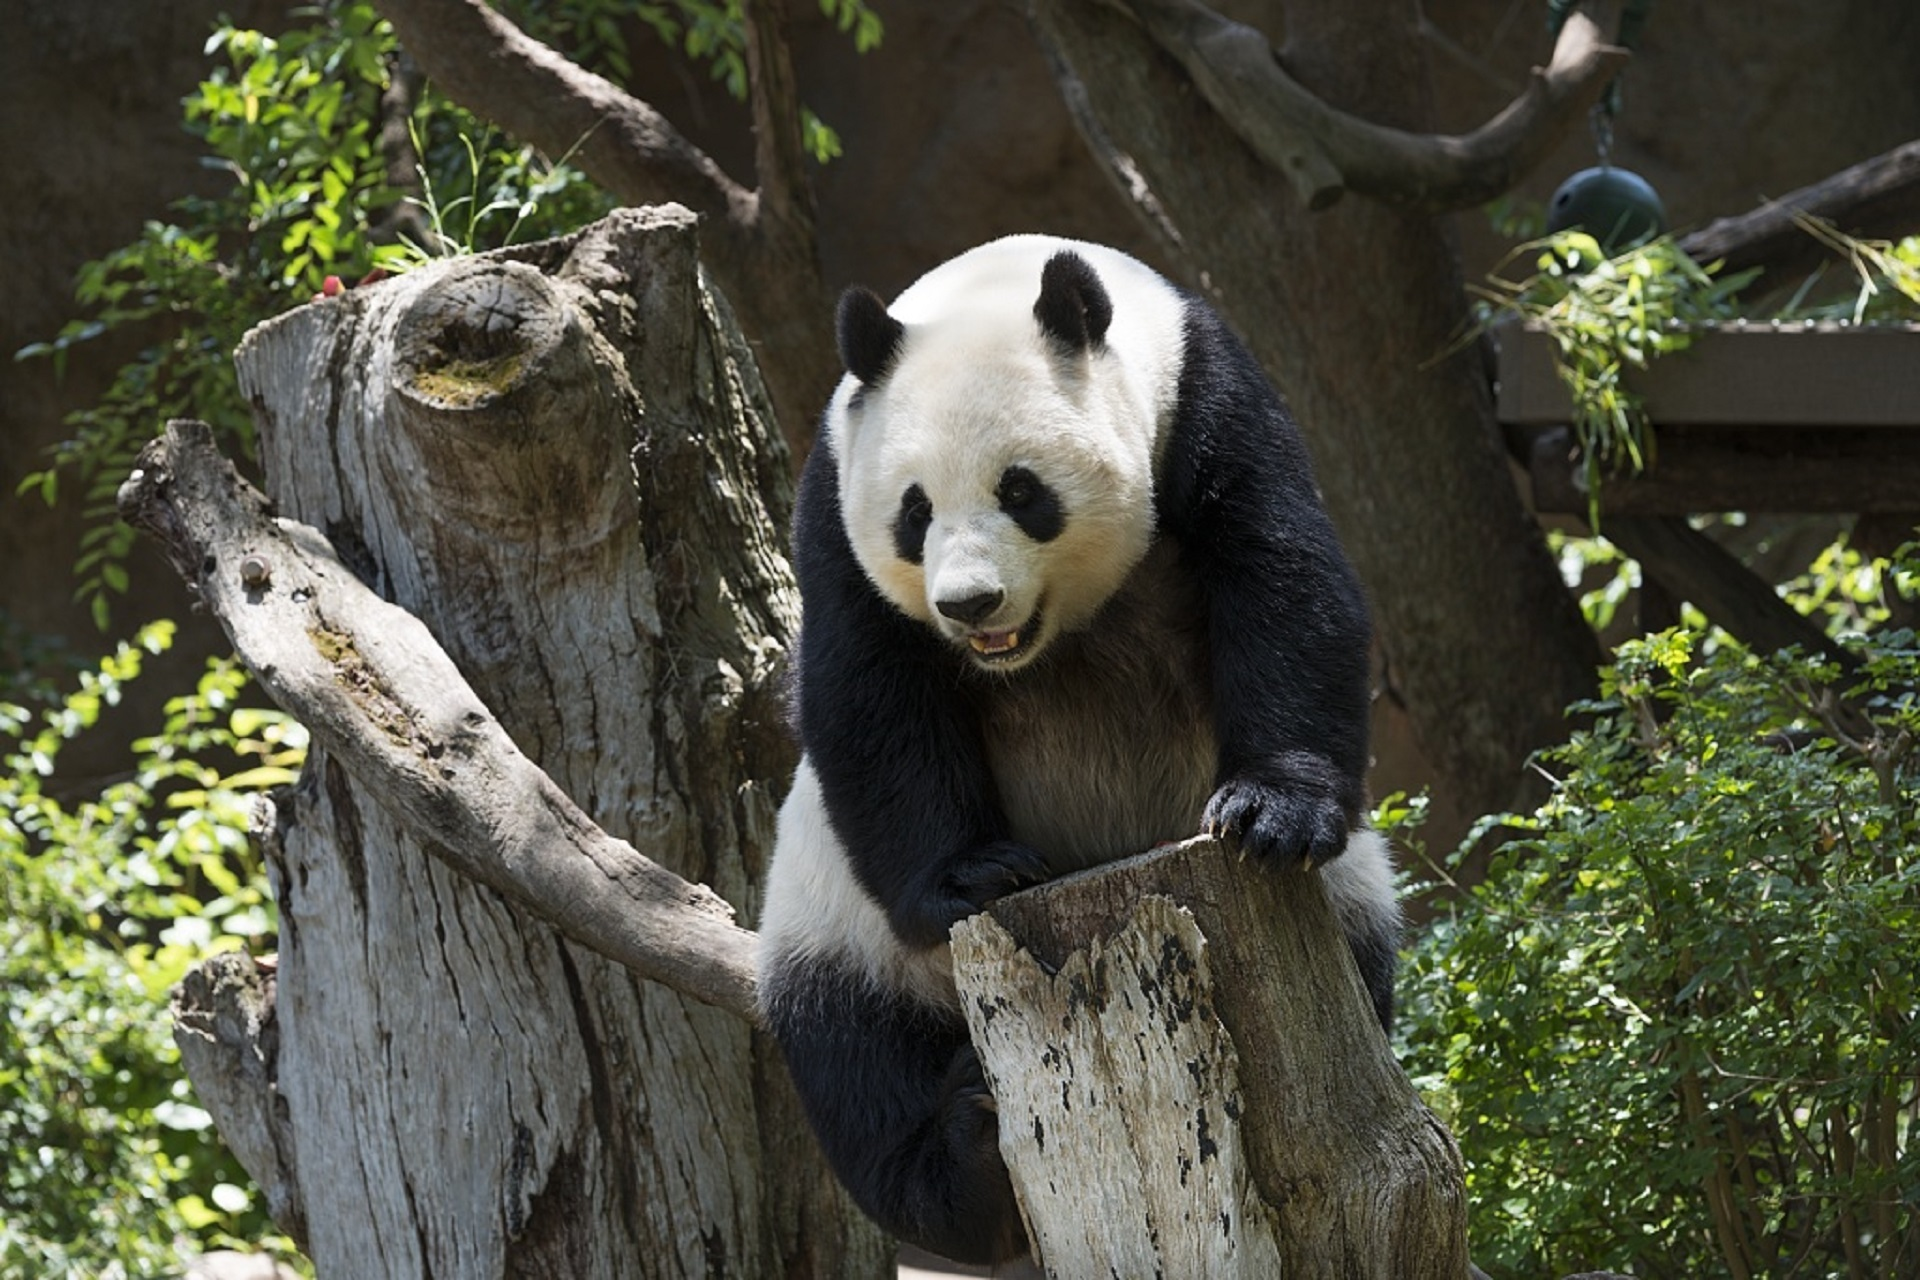 The giant panda, also known as panda bear or simply panda